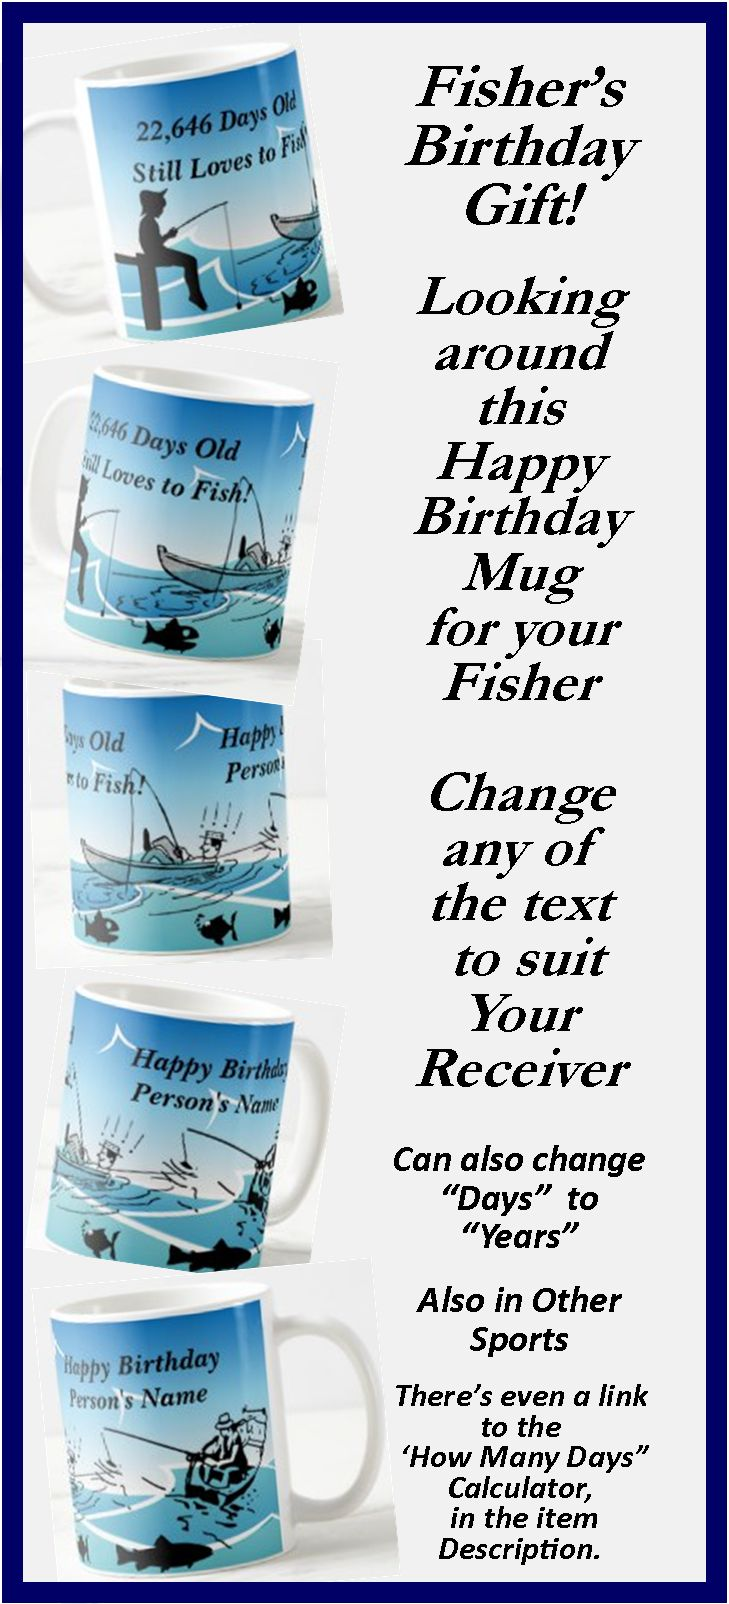 """Great Birthday Gift for the Fisherman or Fisherwoman. - - Change the Days or Years, - - - Change the Name to suit your Recipient. - - there's a """"How many Day"""" calculator link in the item description."""